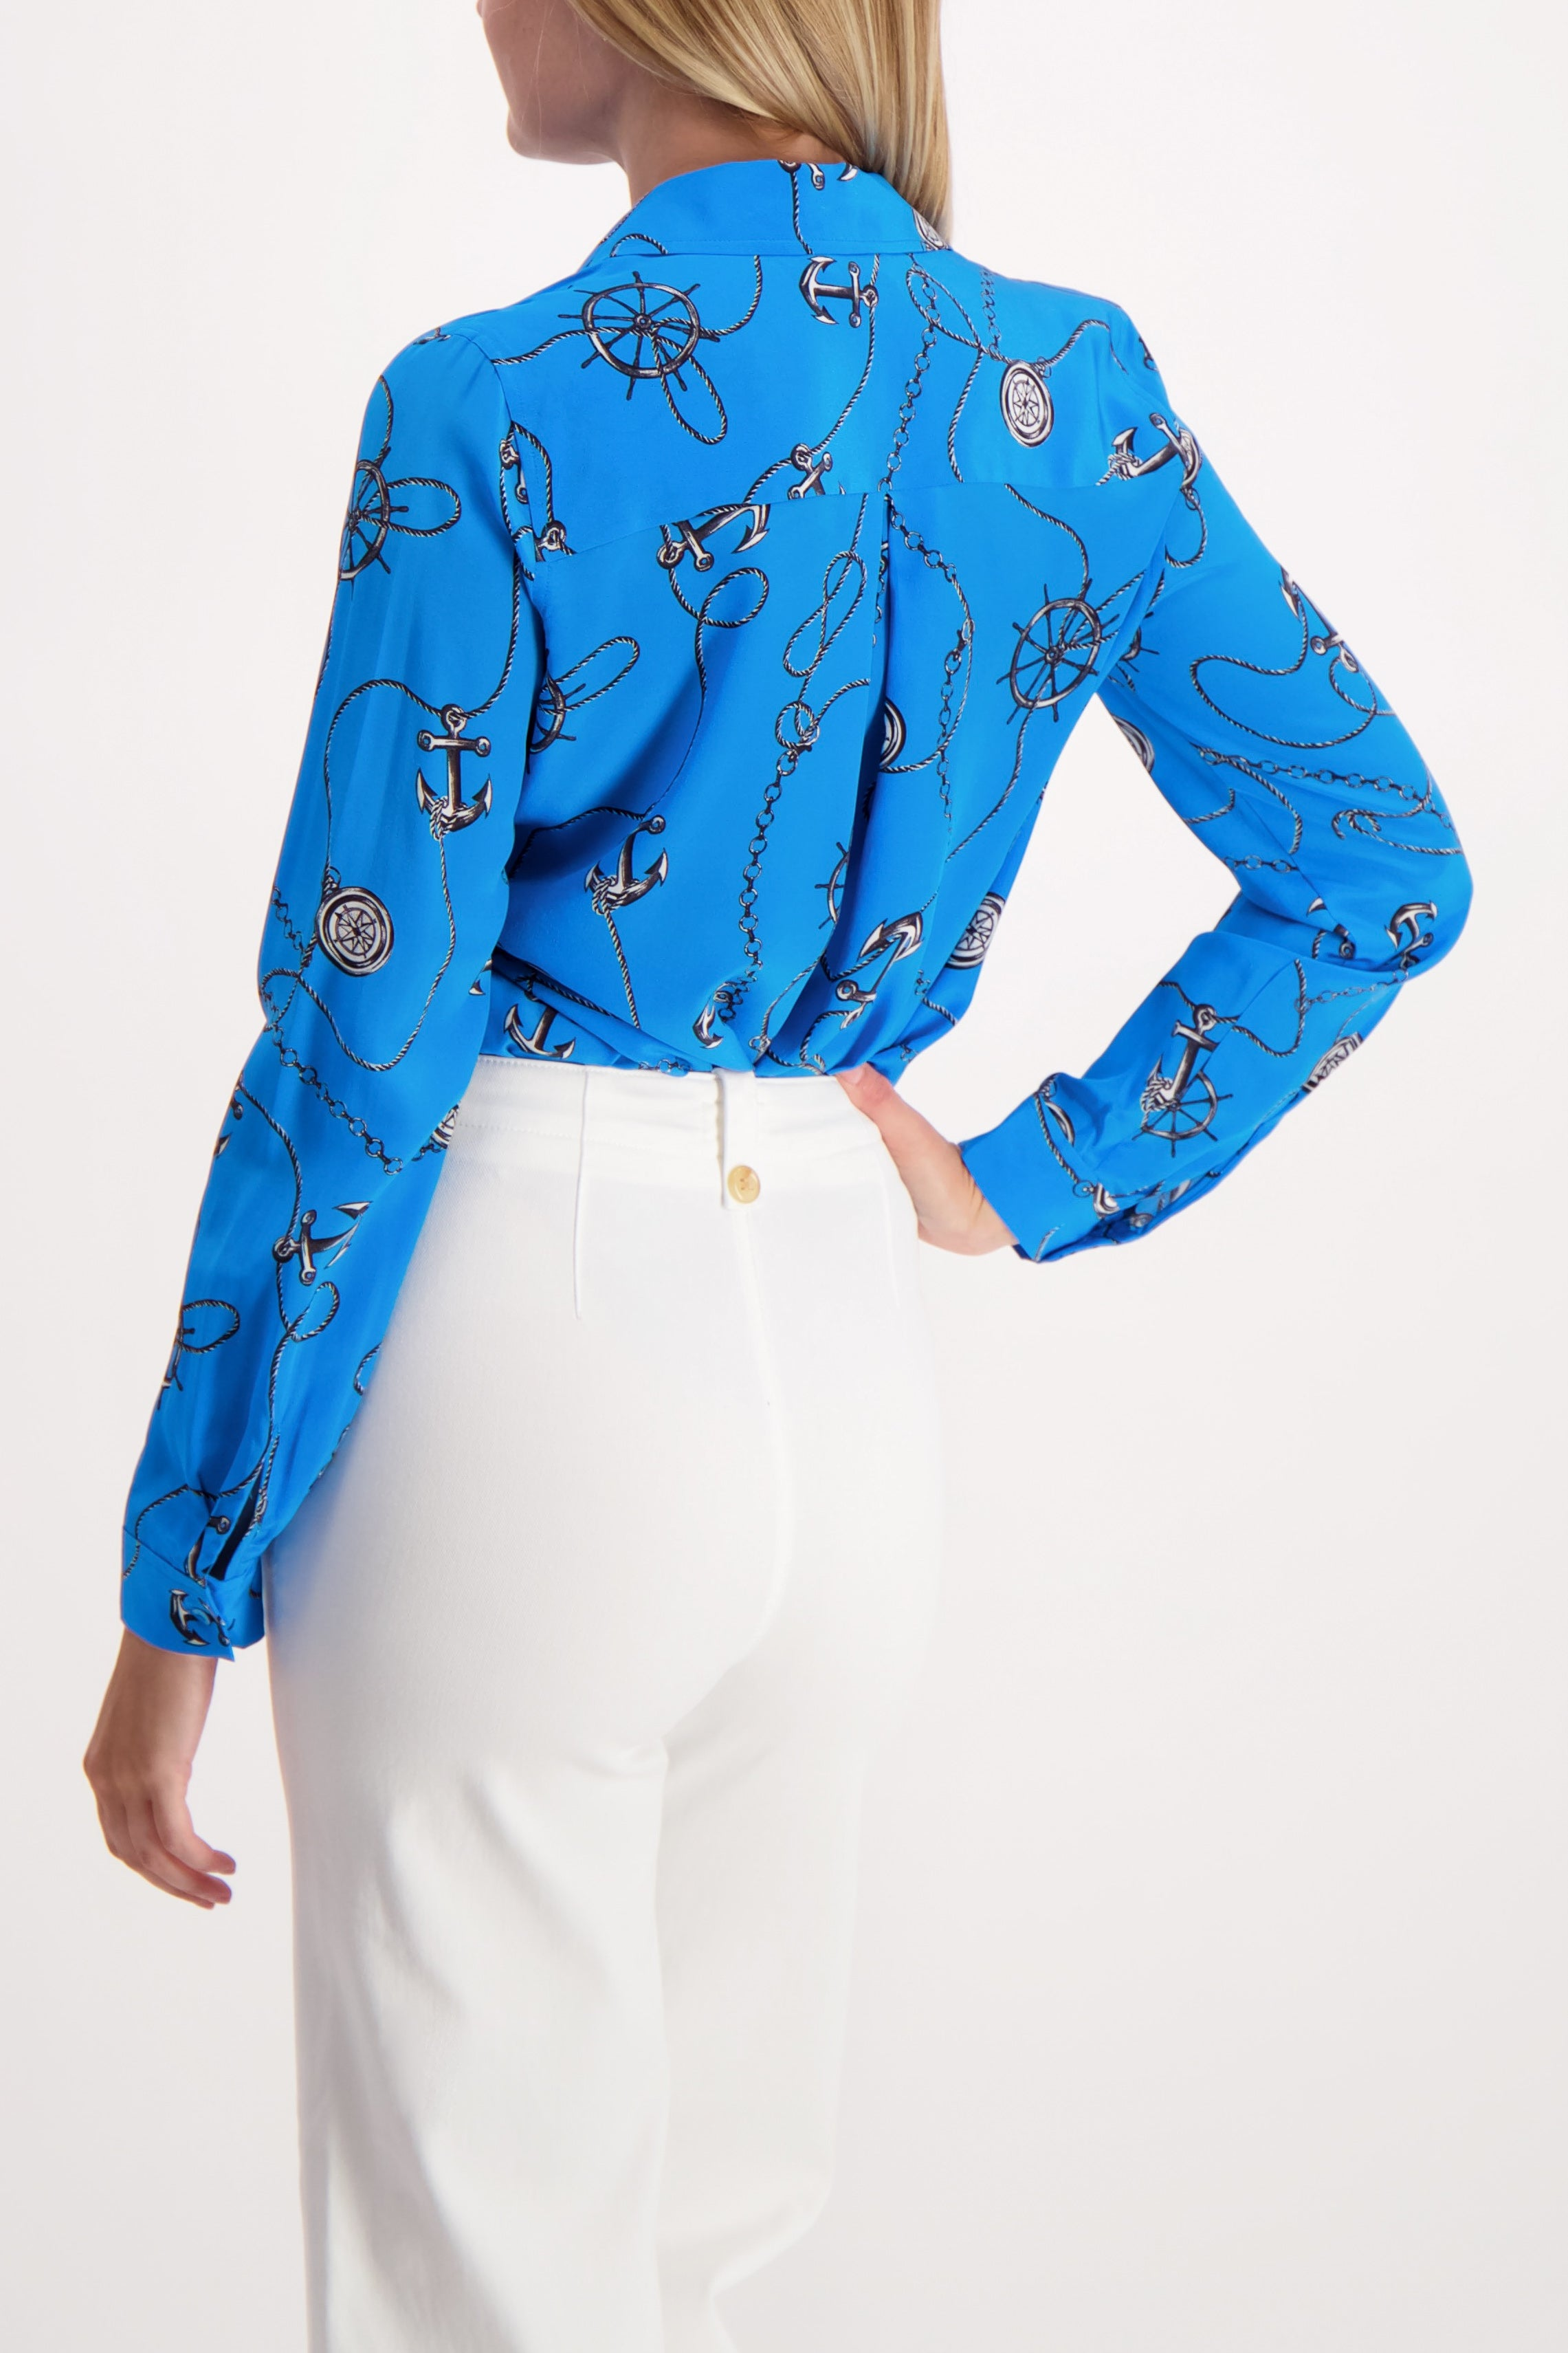 Back Crop Image Of Model Wearing Long Sleeve Nina Blouse Blue